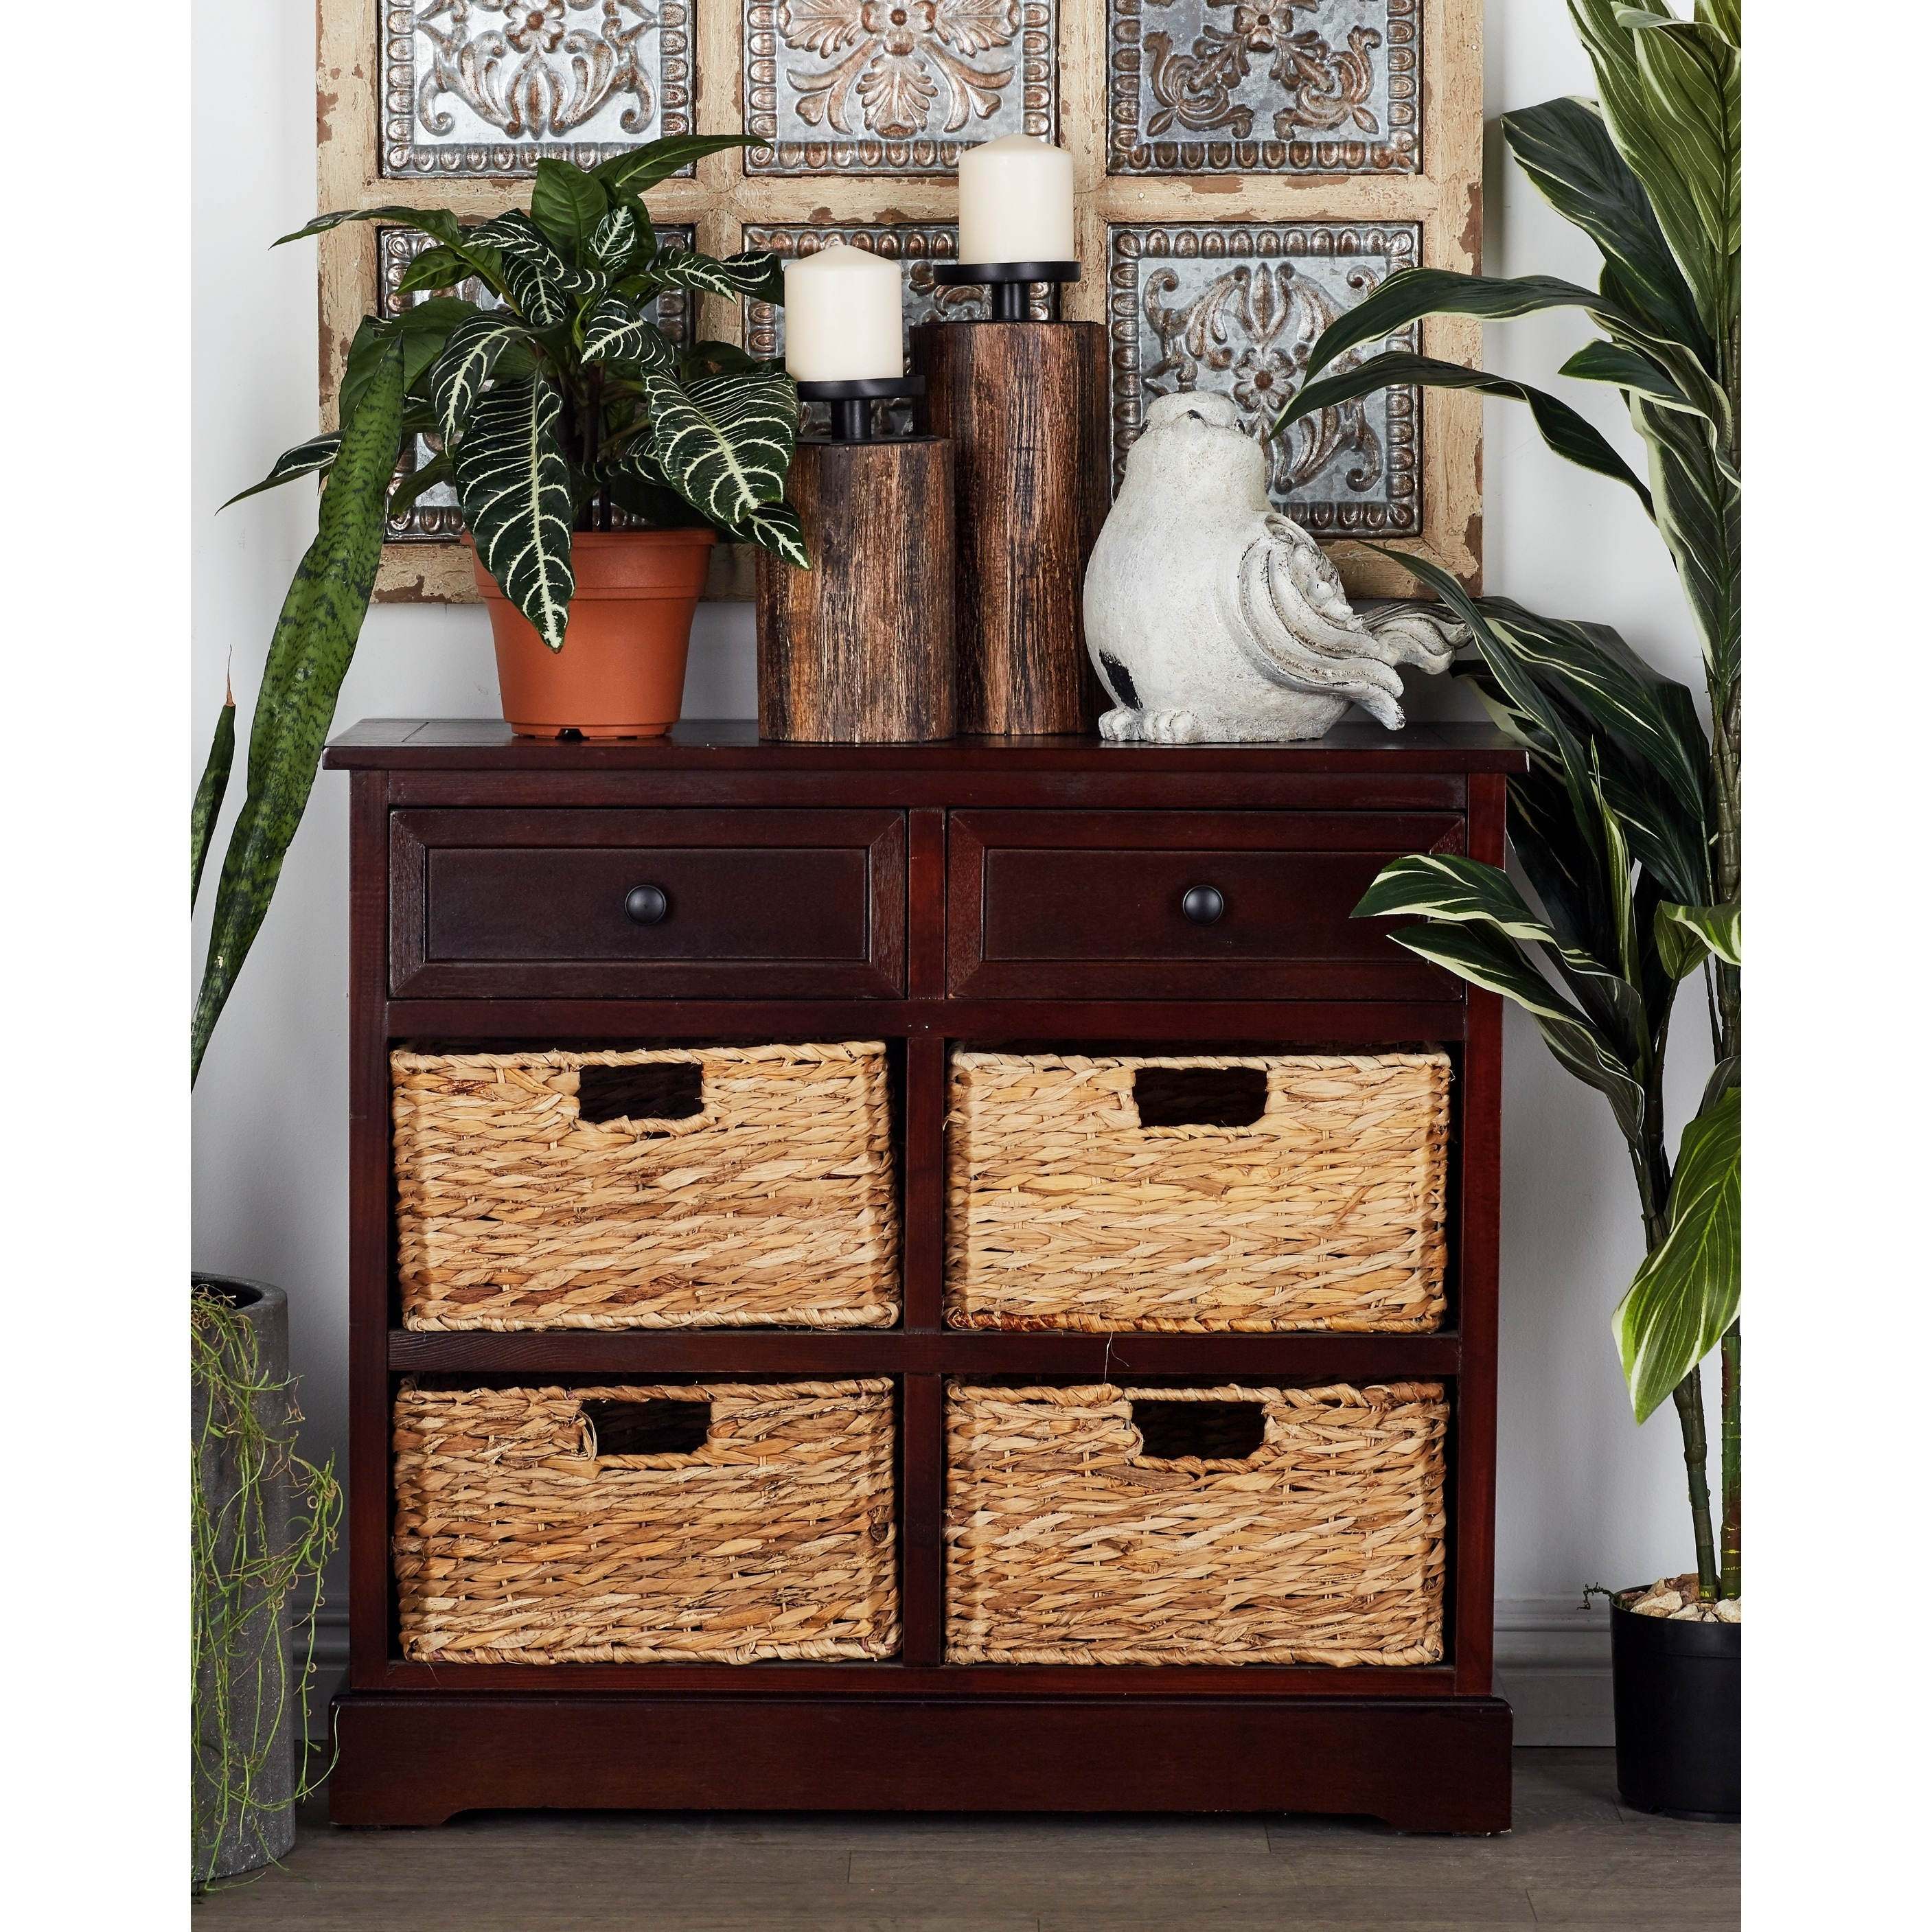 Traditional 28 x 30 Inch Brown Six-Drawer Wooden Chest by Studio 350 (Basket)